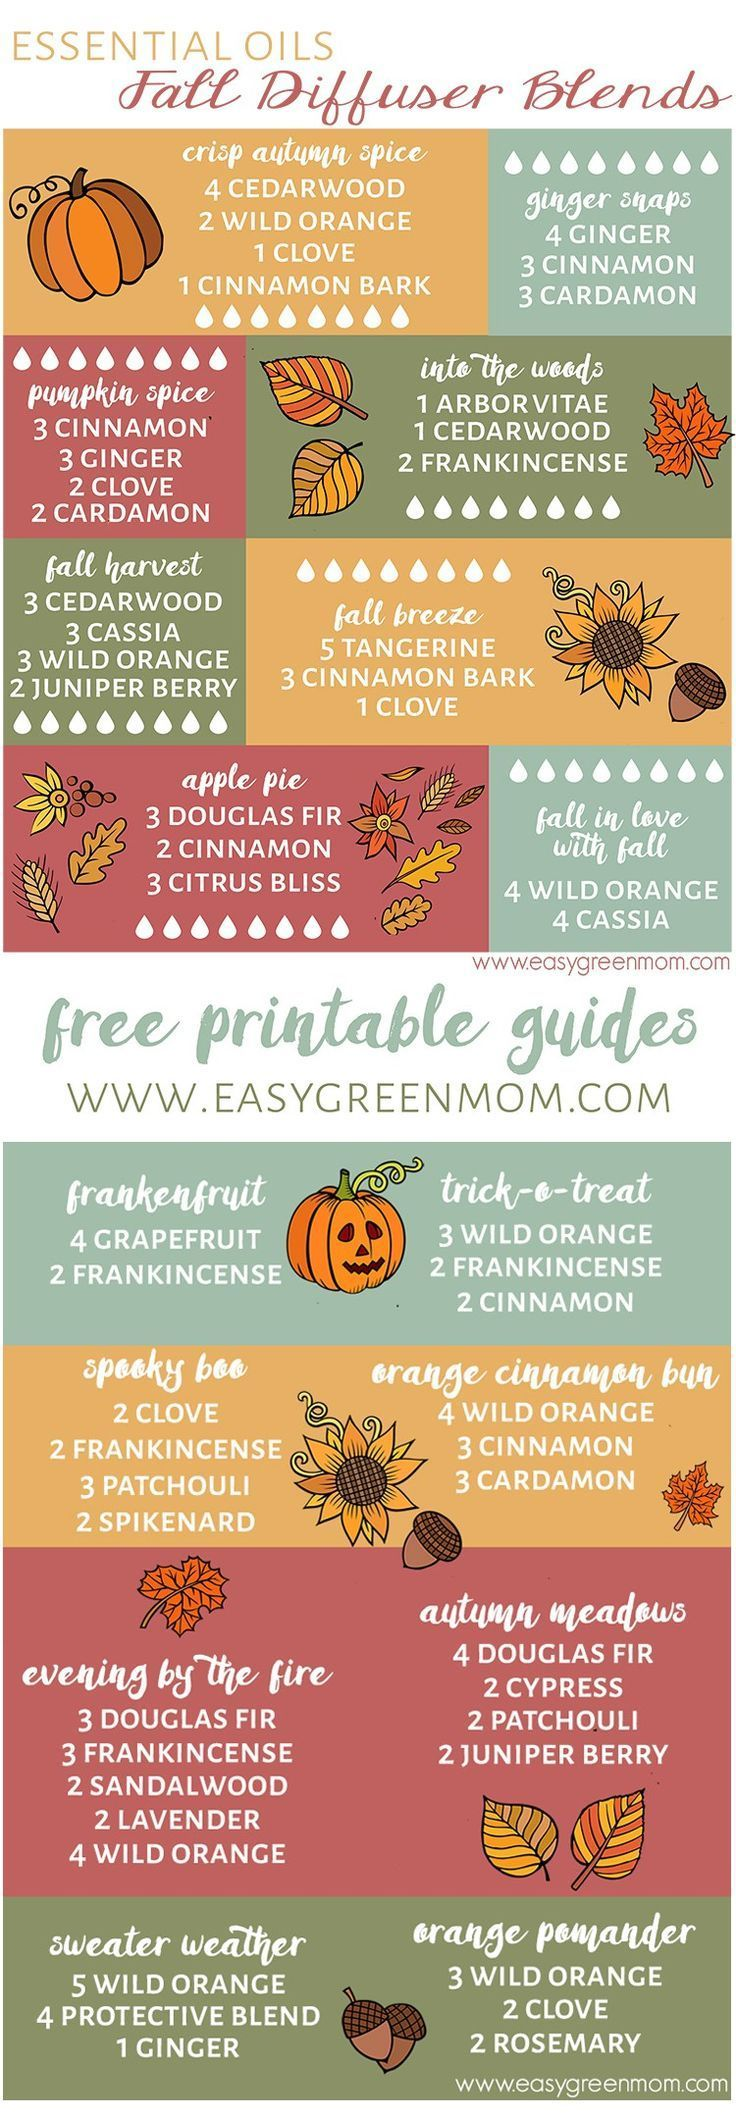 Essential Oils Fall/ Autumn Diffuser Blend Recipes. Free Printable Guide from Easy Green Mom.